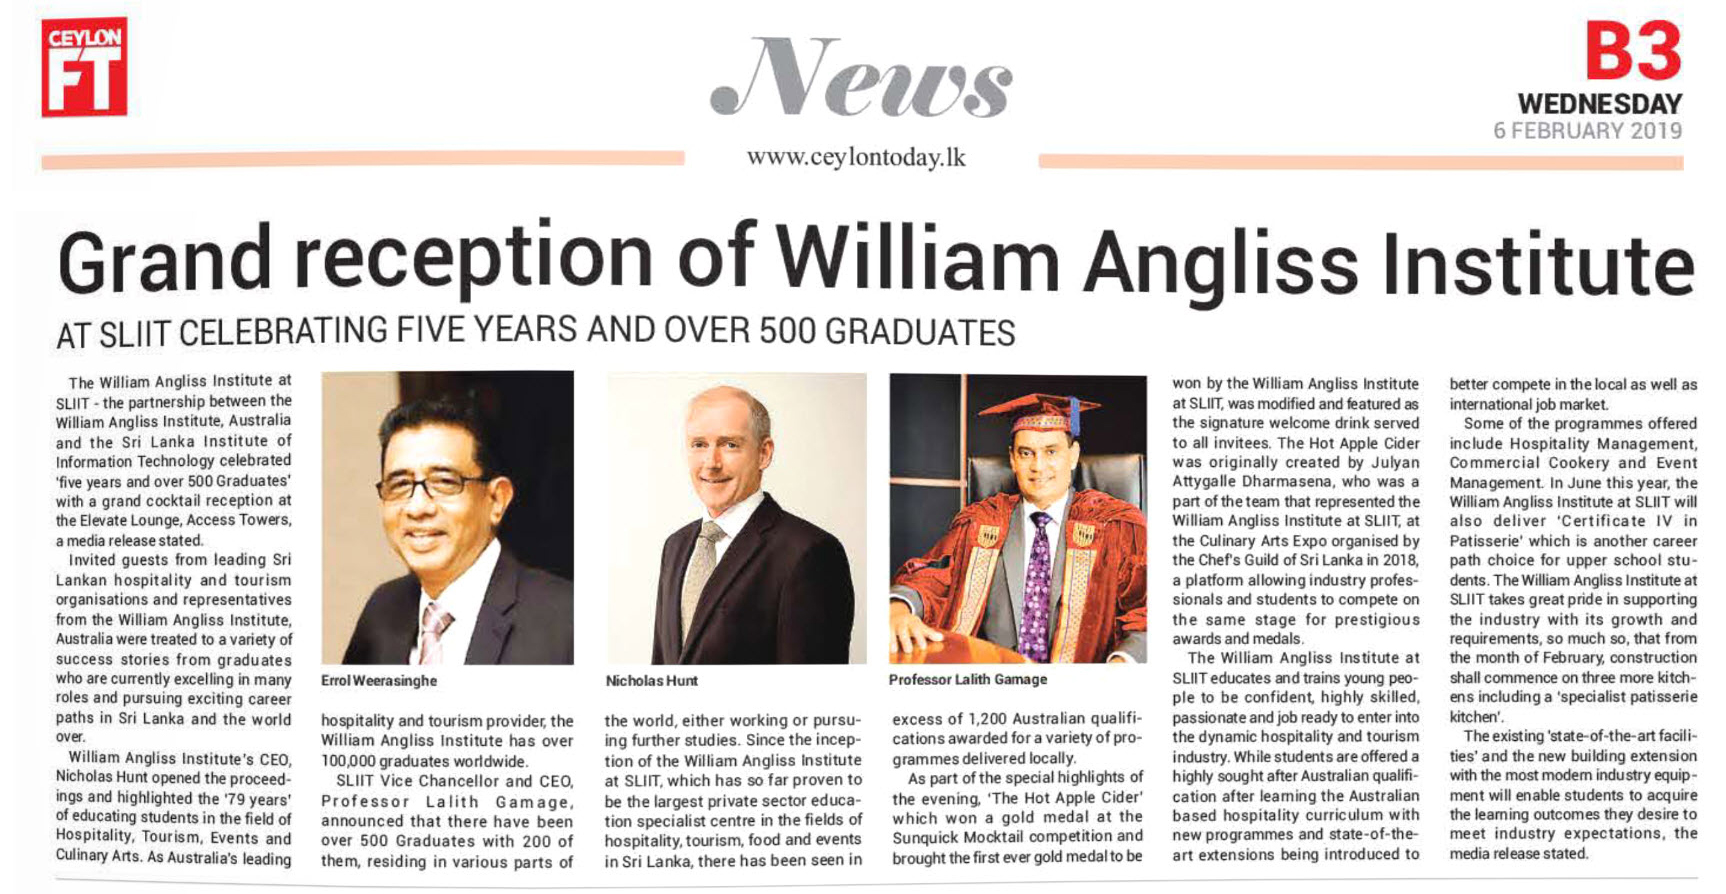 Grand-Reception-of-William-Angliss-Institute-At-SLIIT-Celebrating-Five-Years-and-Over-500-Graduates-Ceylon-Today